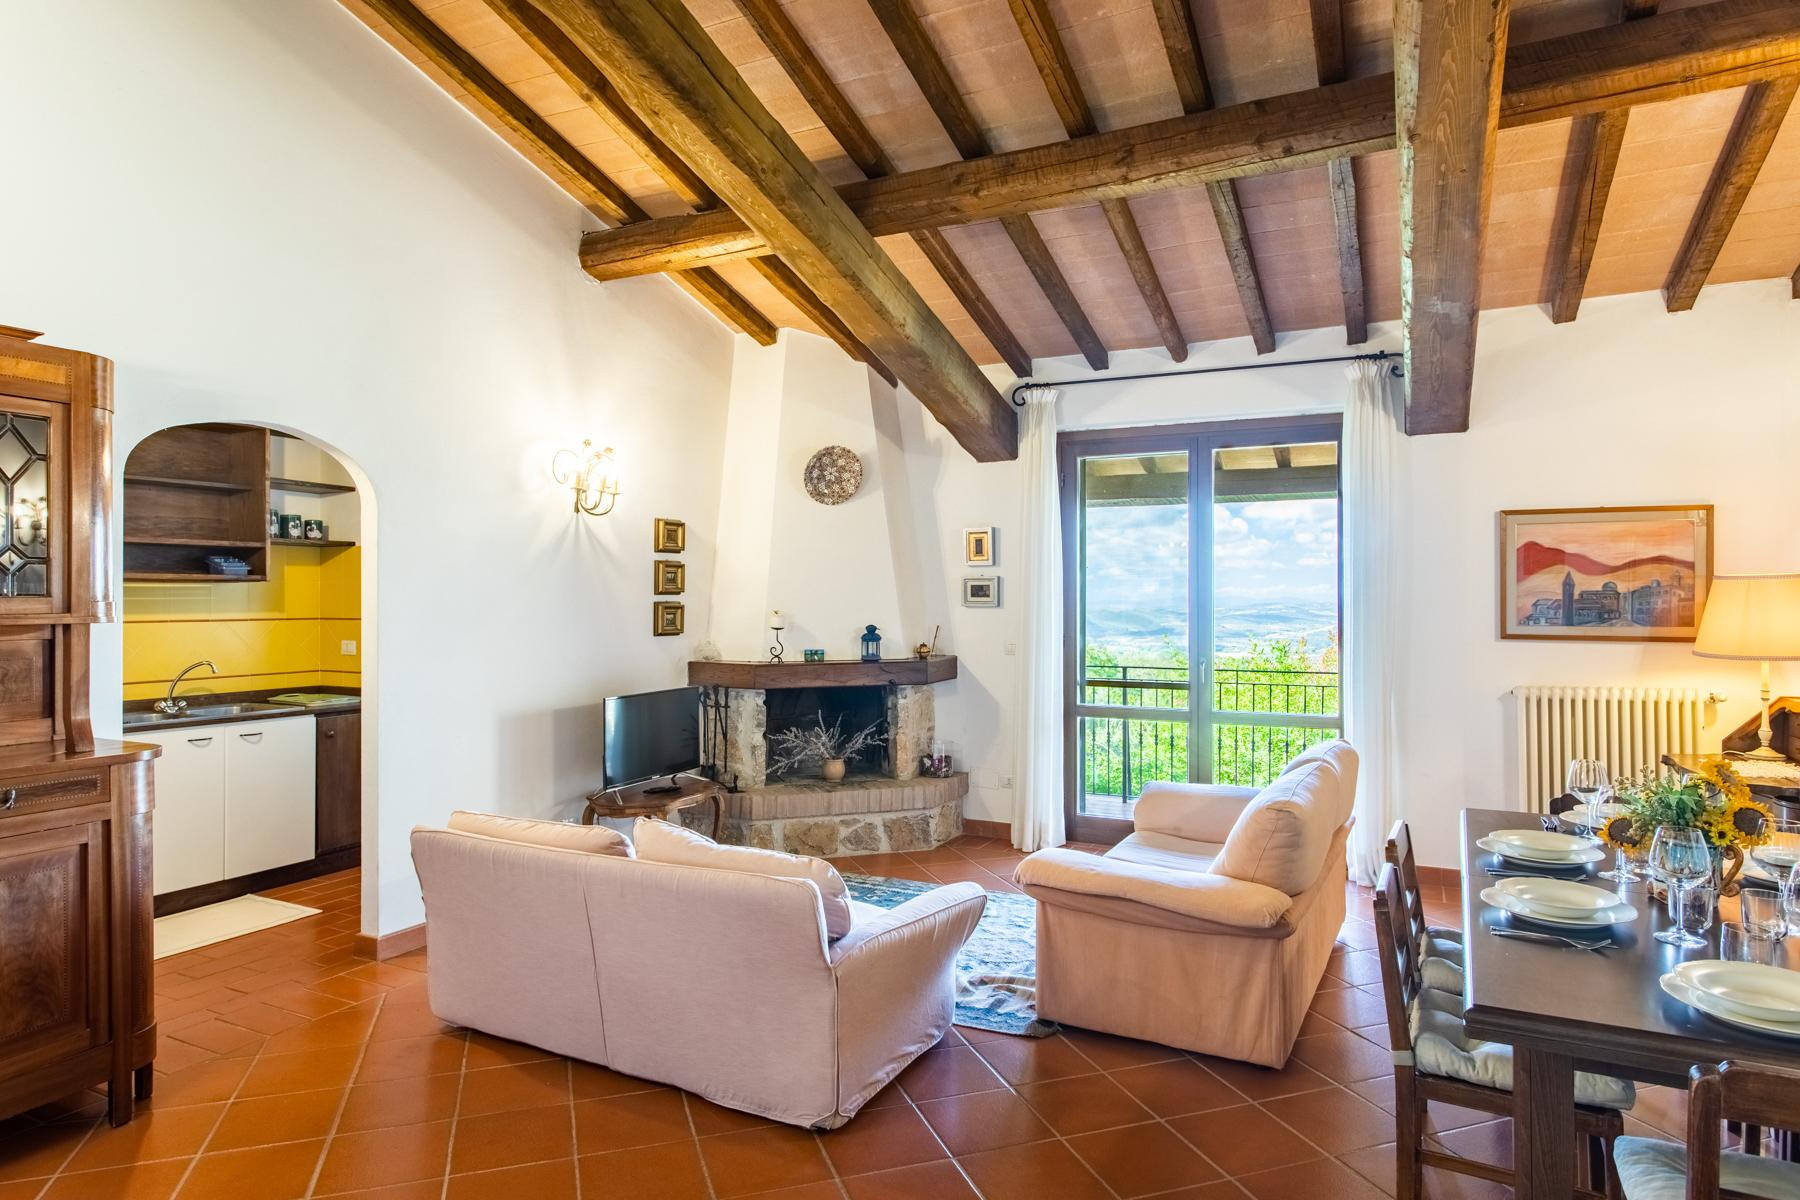 Charming farmhouse with swimming pool in the Maremma countryside - 10